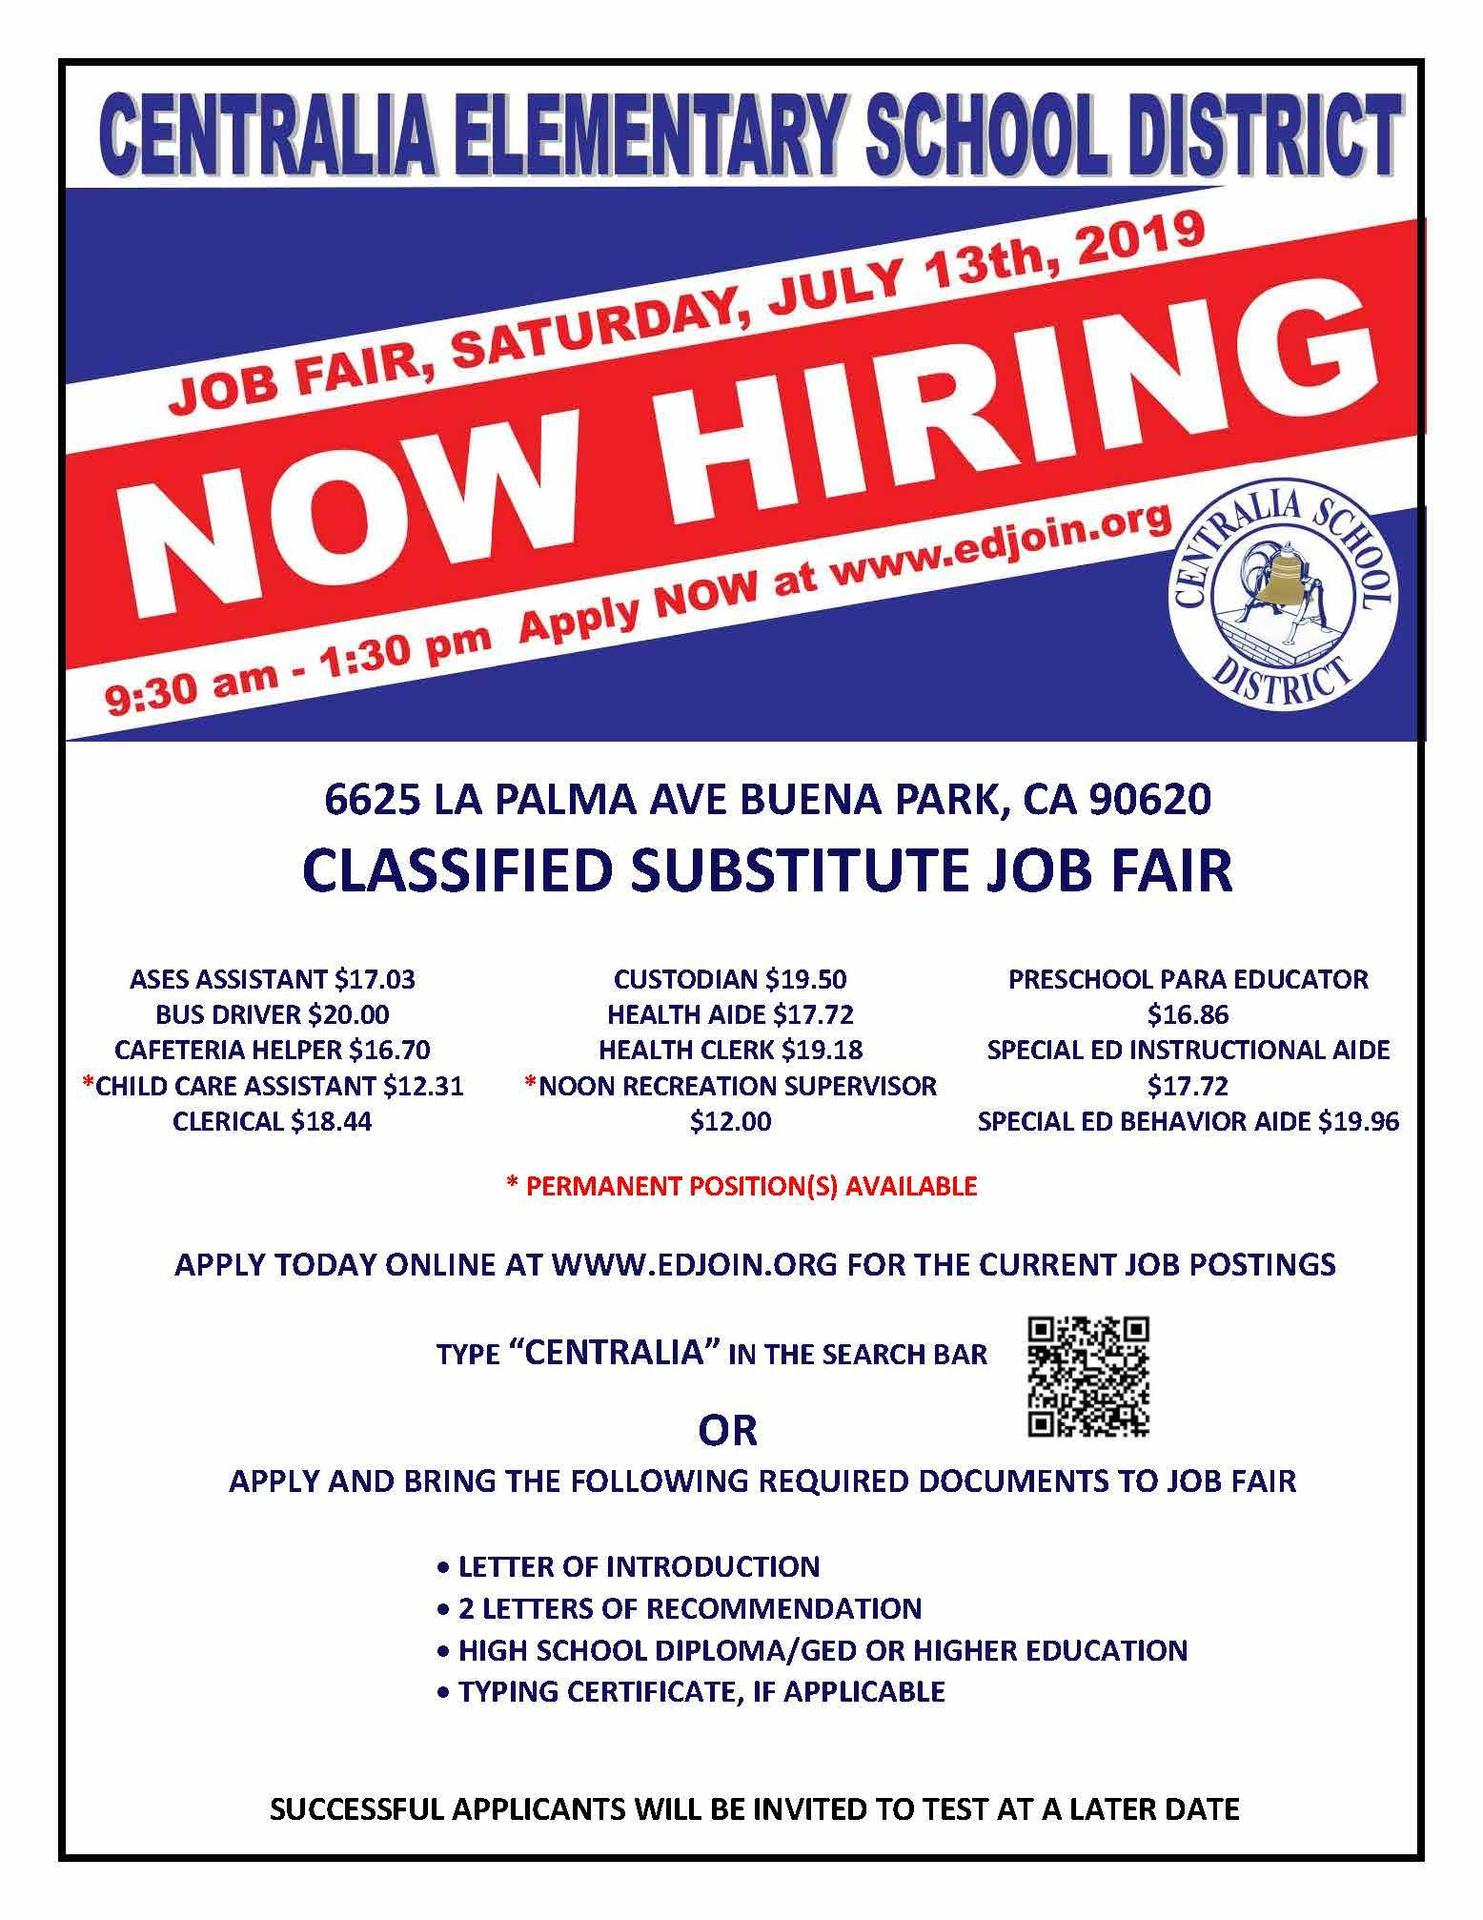 Flyer announcing Job Fair on July 13 from 9:30 to 1:30